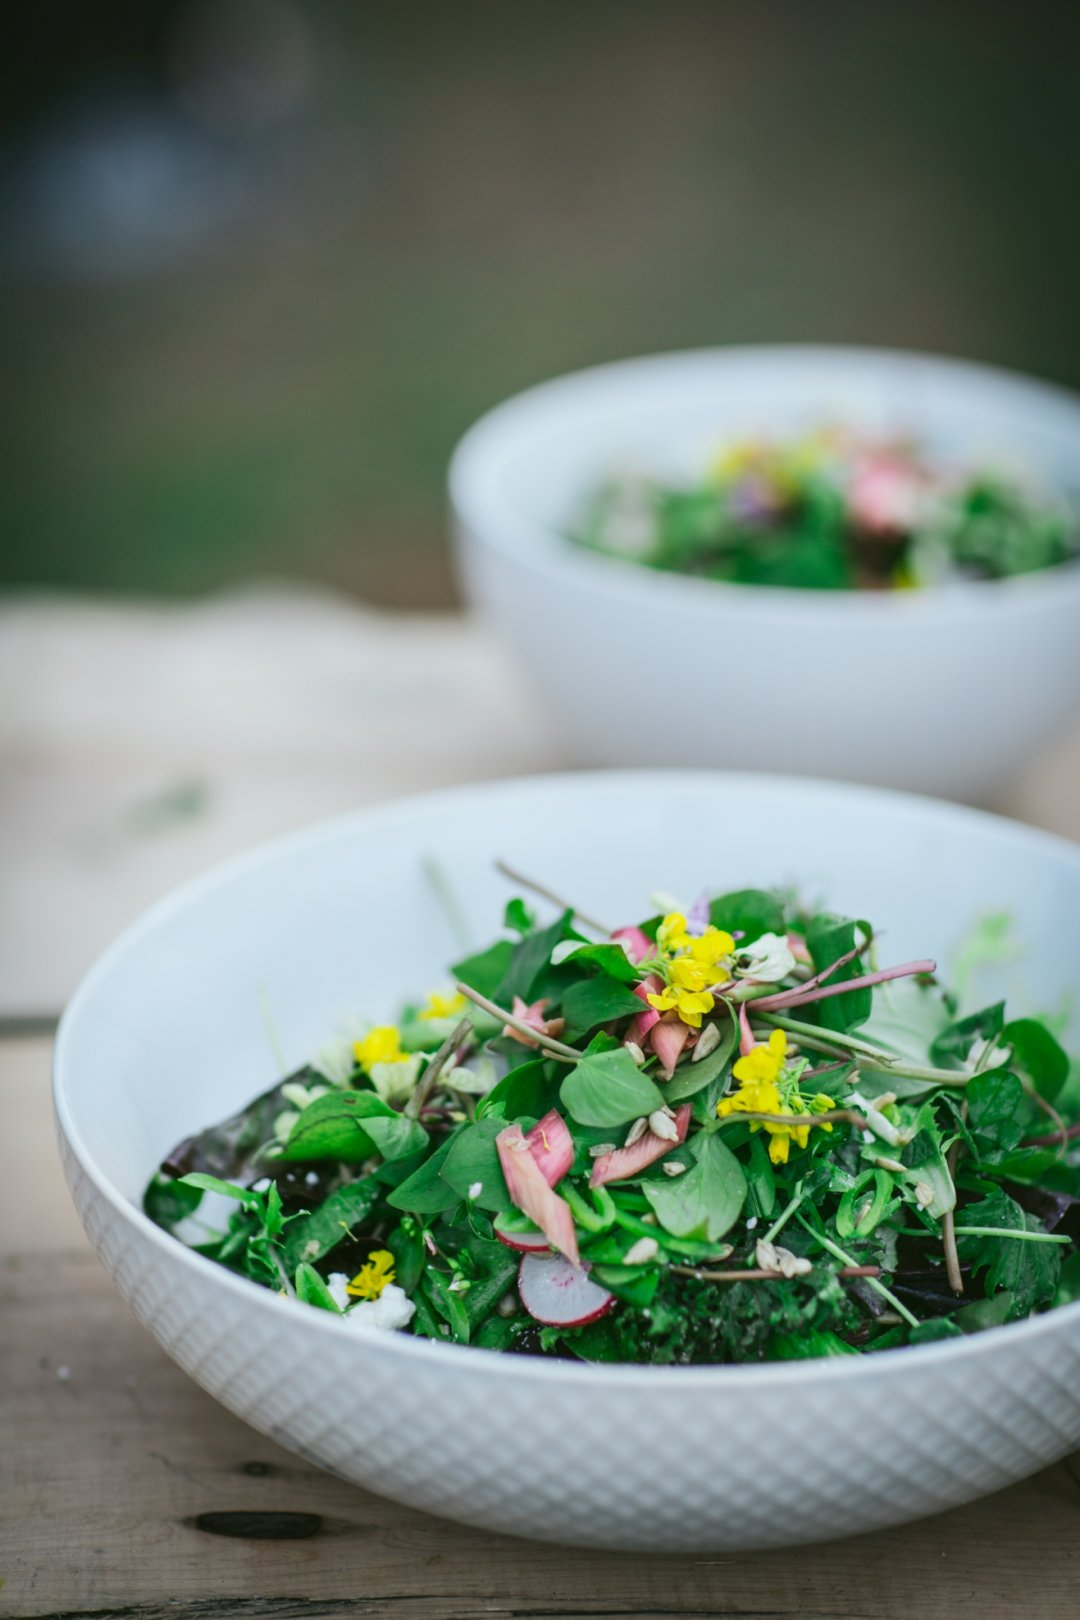 White bowls filled with green salads